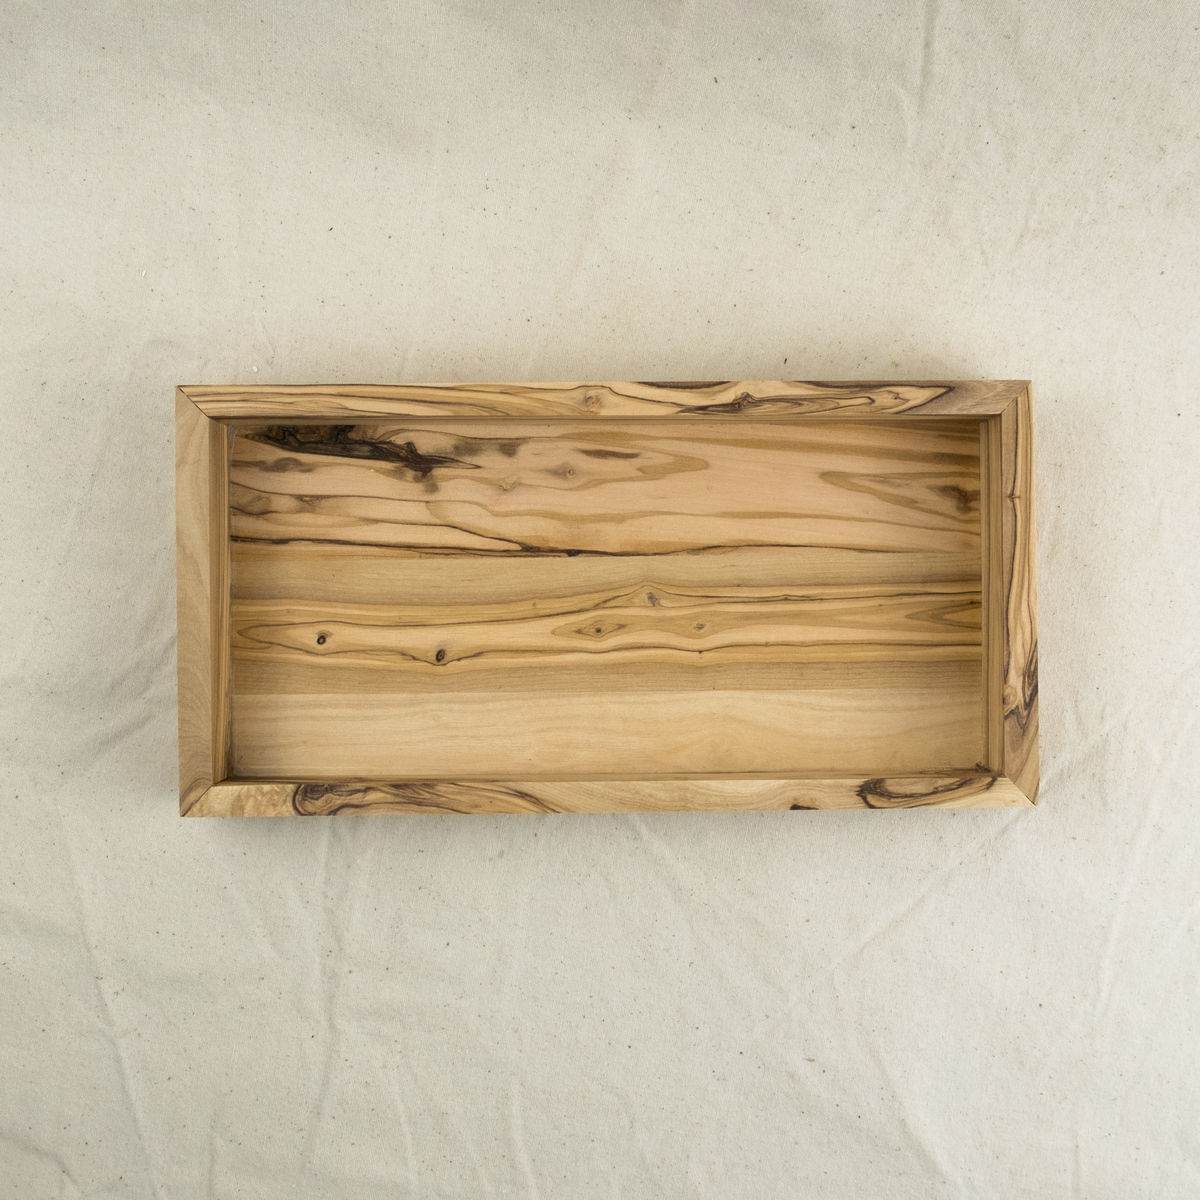 Multi purpose olive wood tray - Handcrafted in Palestine - product images  of